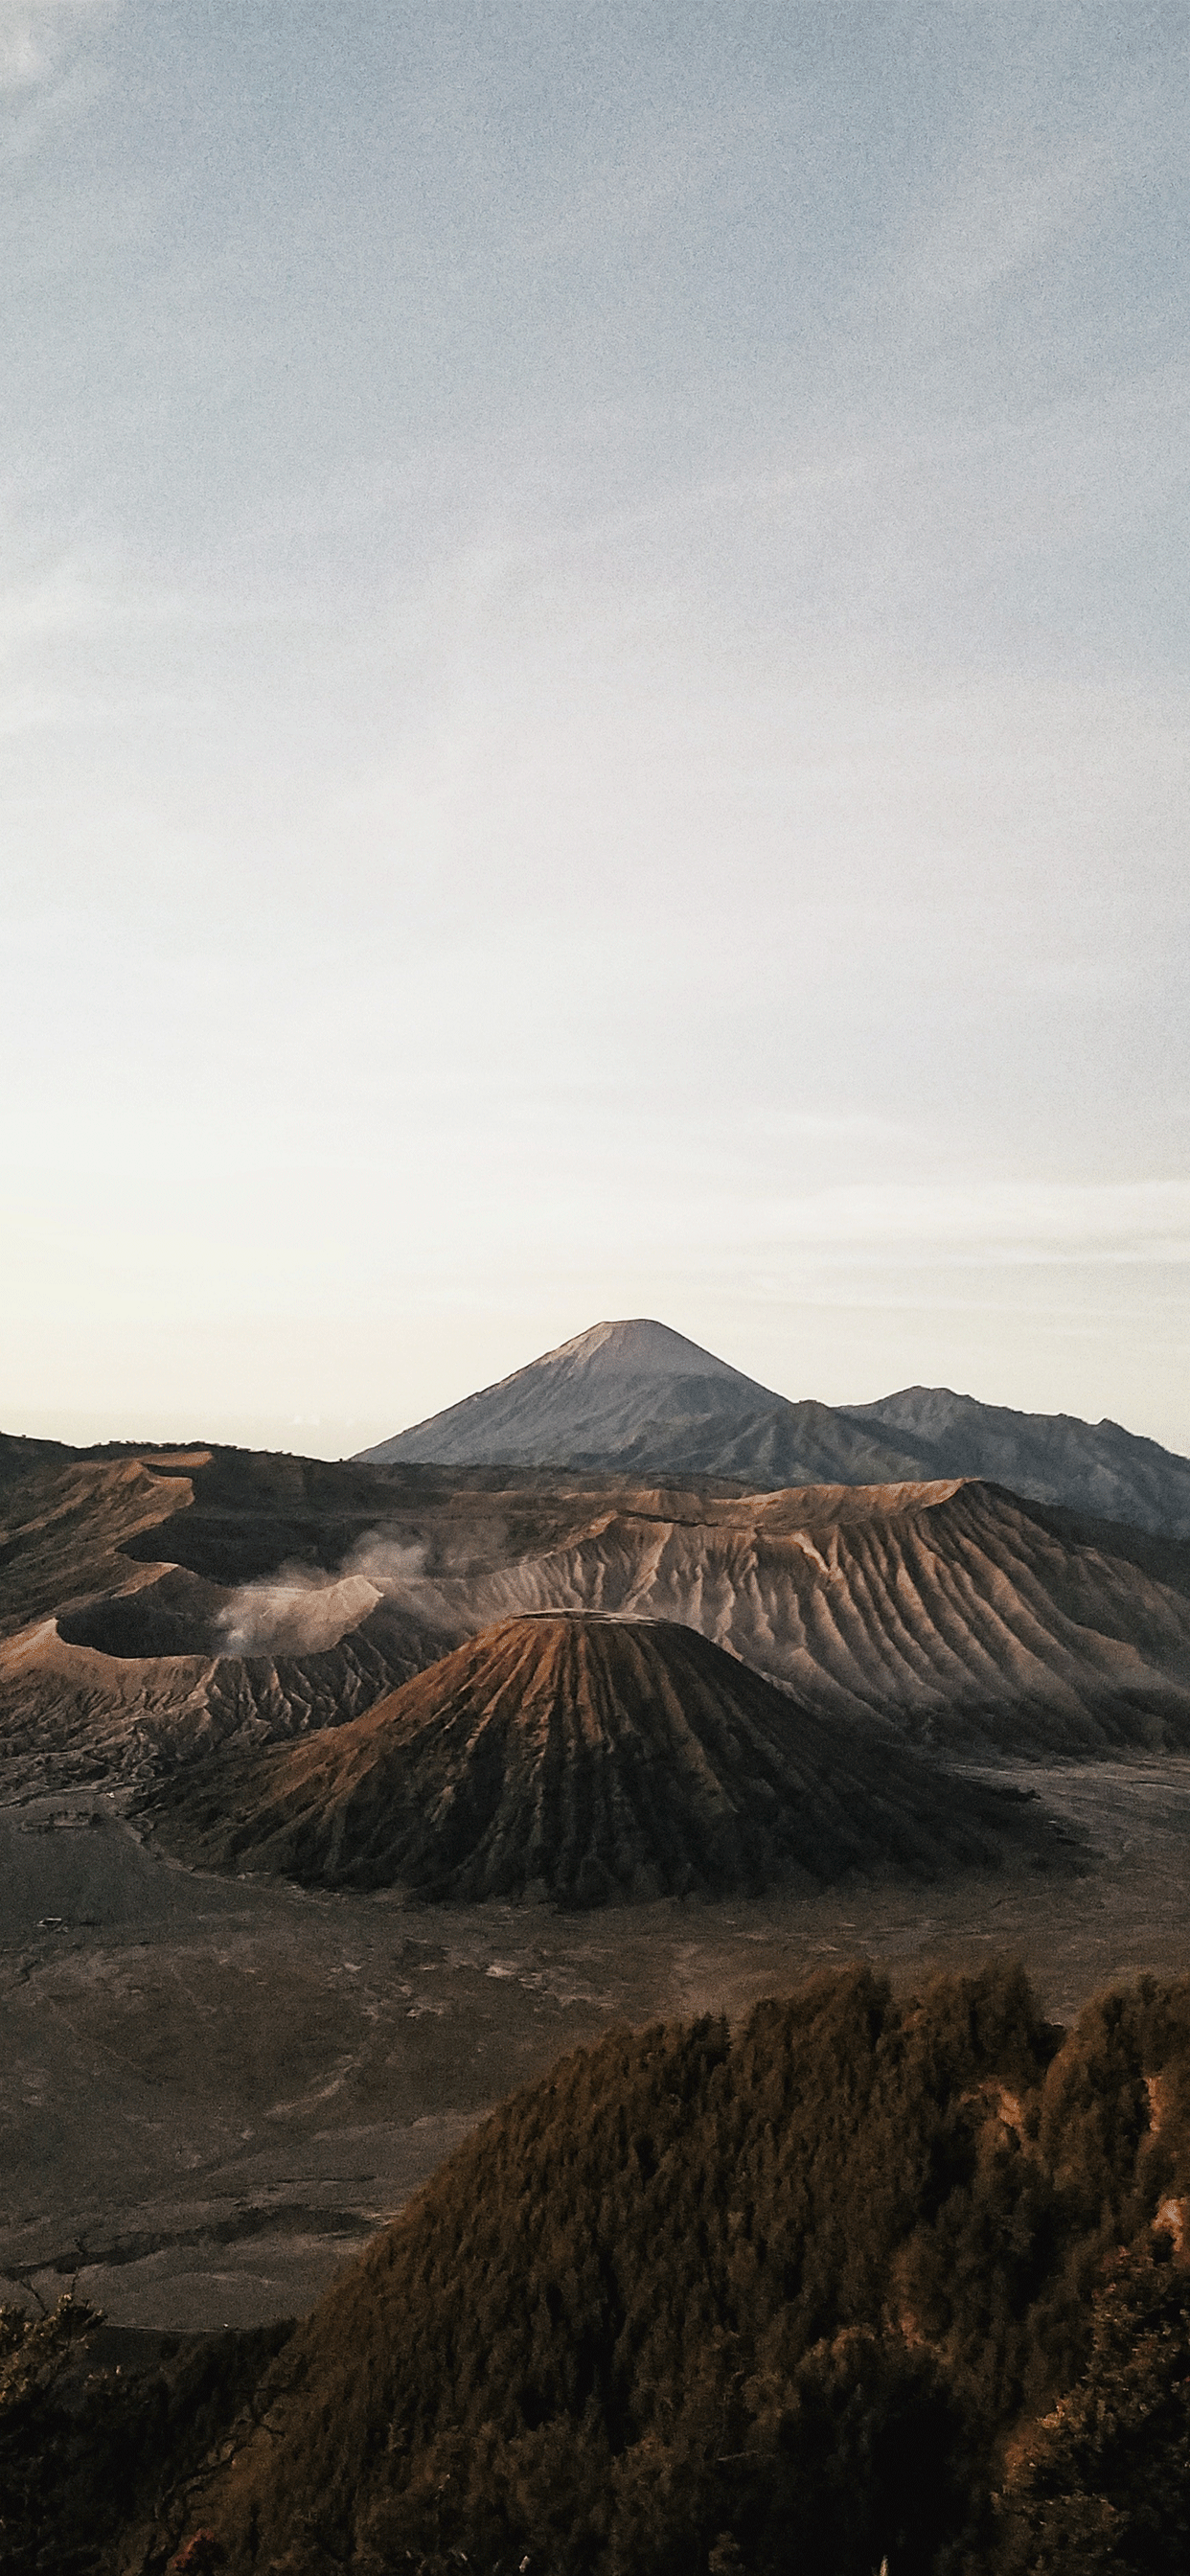 iPhone wallpaper volcano indonesia Fonds d'écran iPhone du 26/10/2018